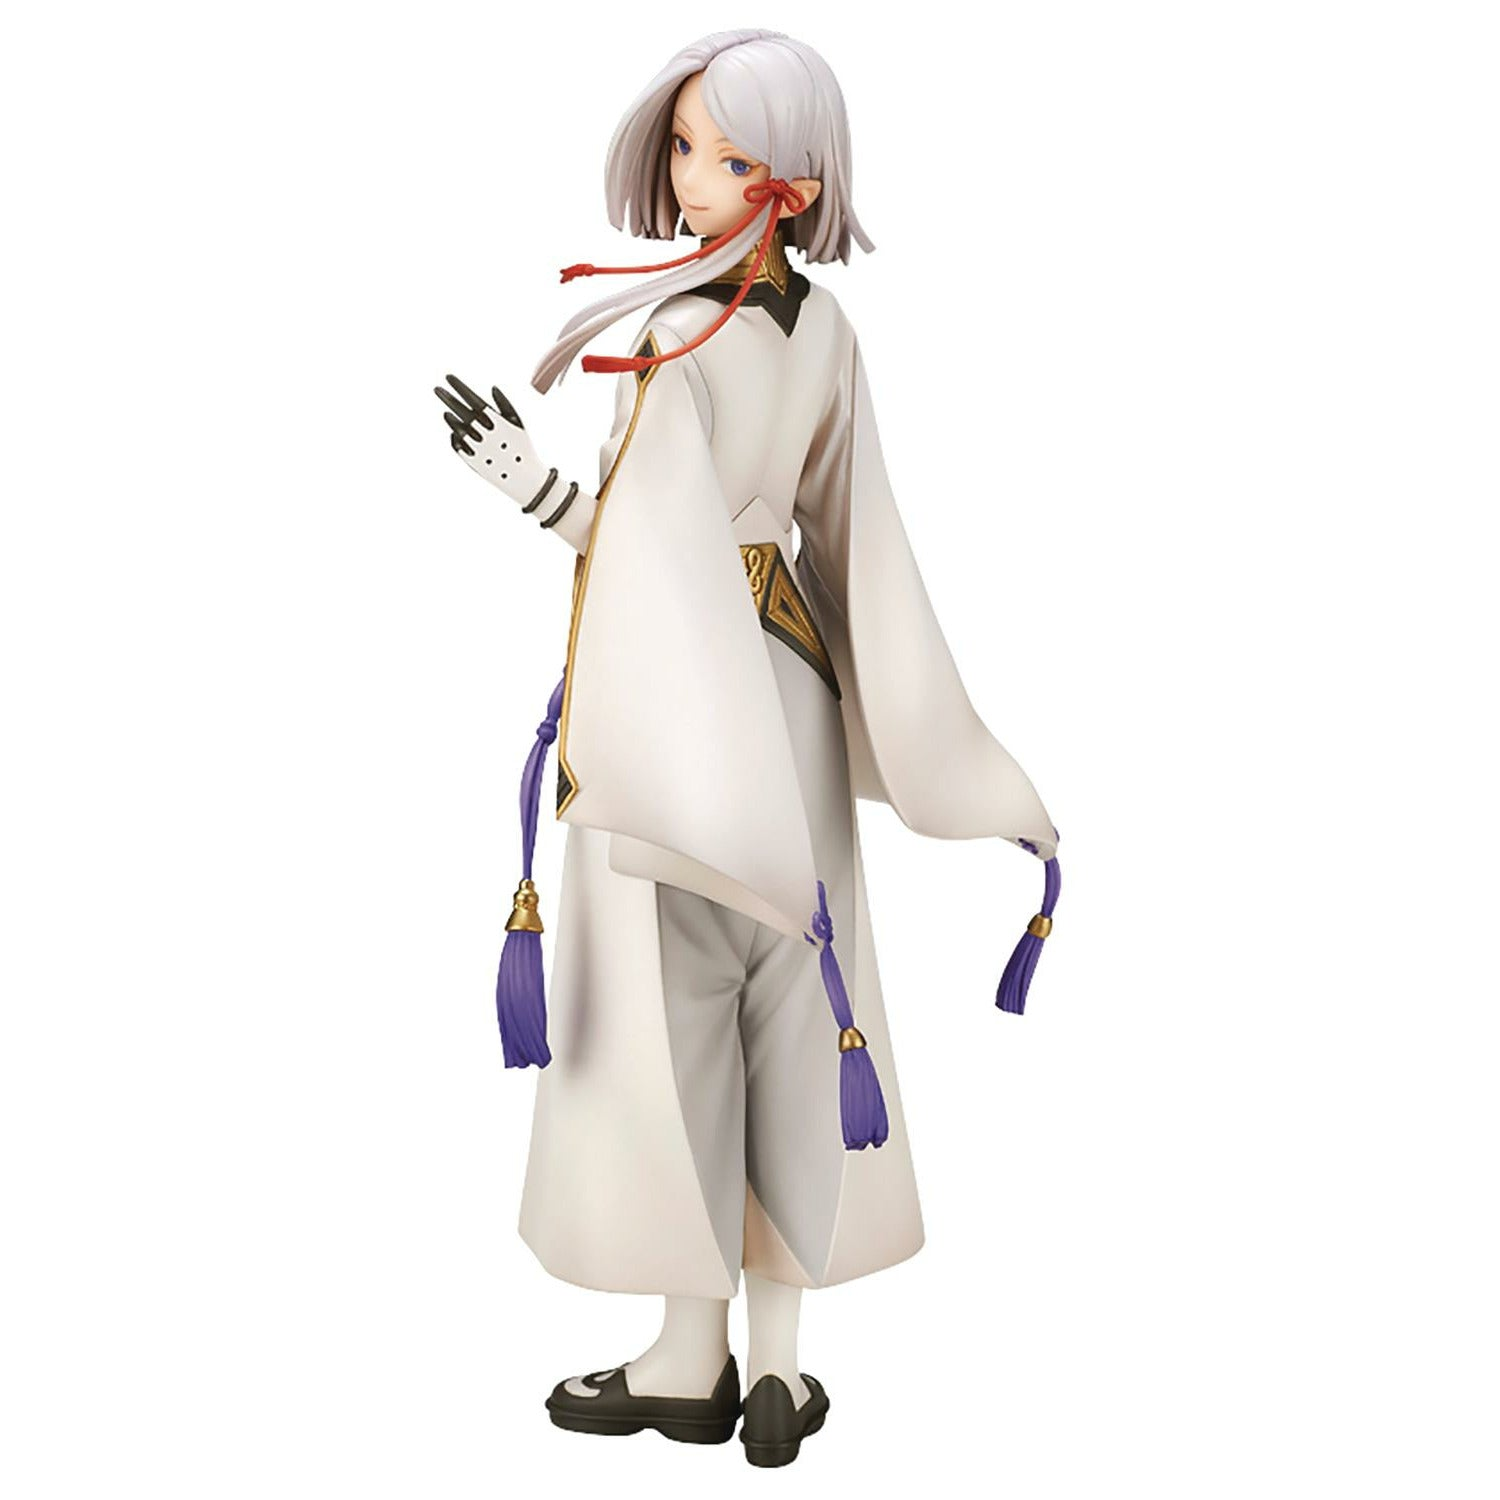 Last Exile Fam The Silver Wing Dio Eraclea Altair 1/8 Scale Figure